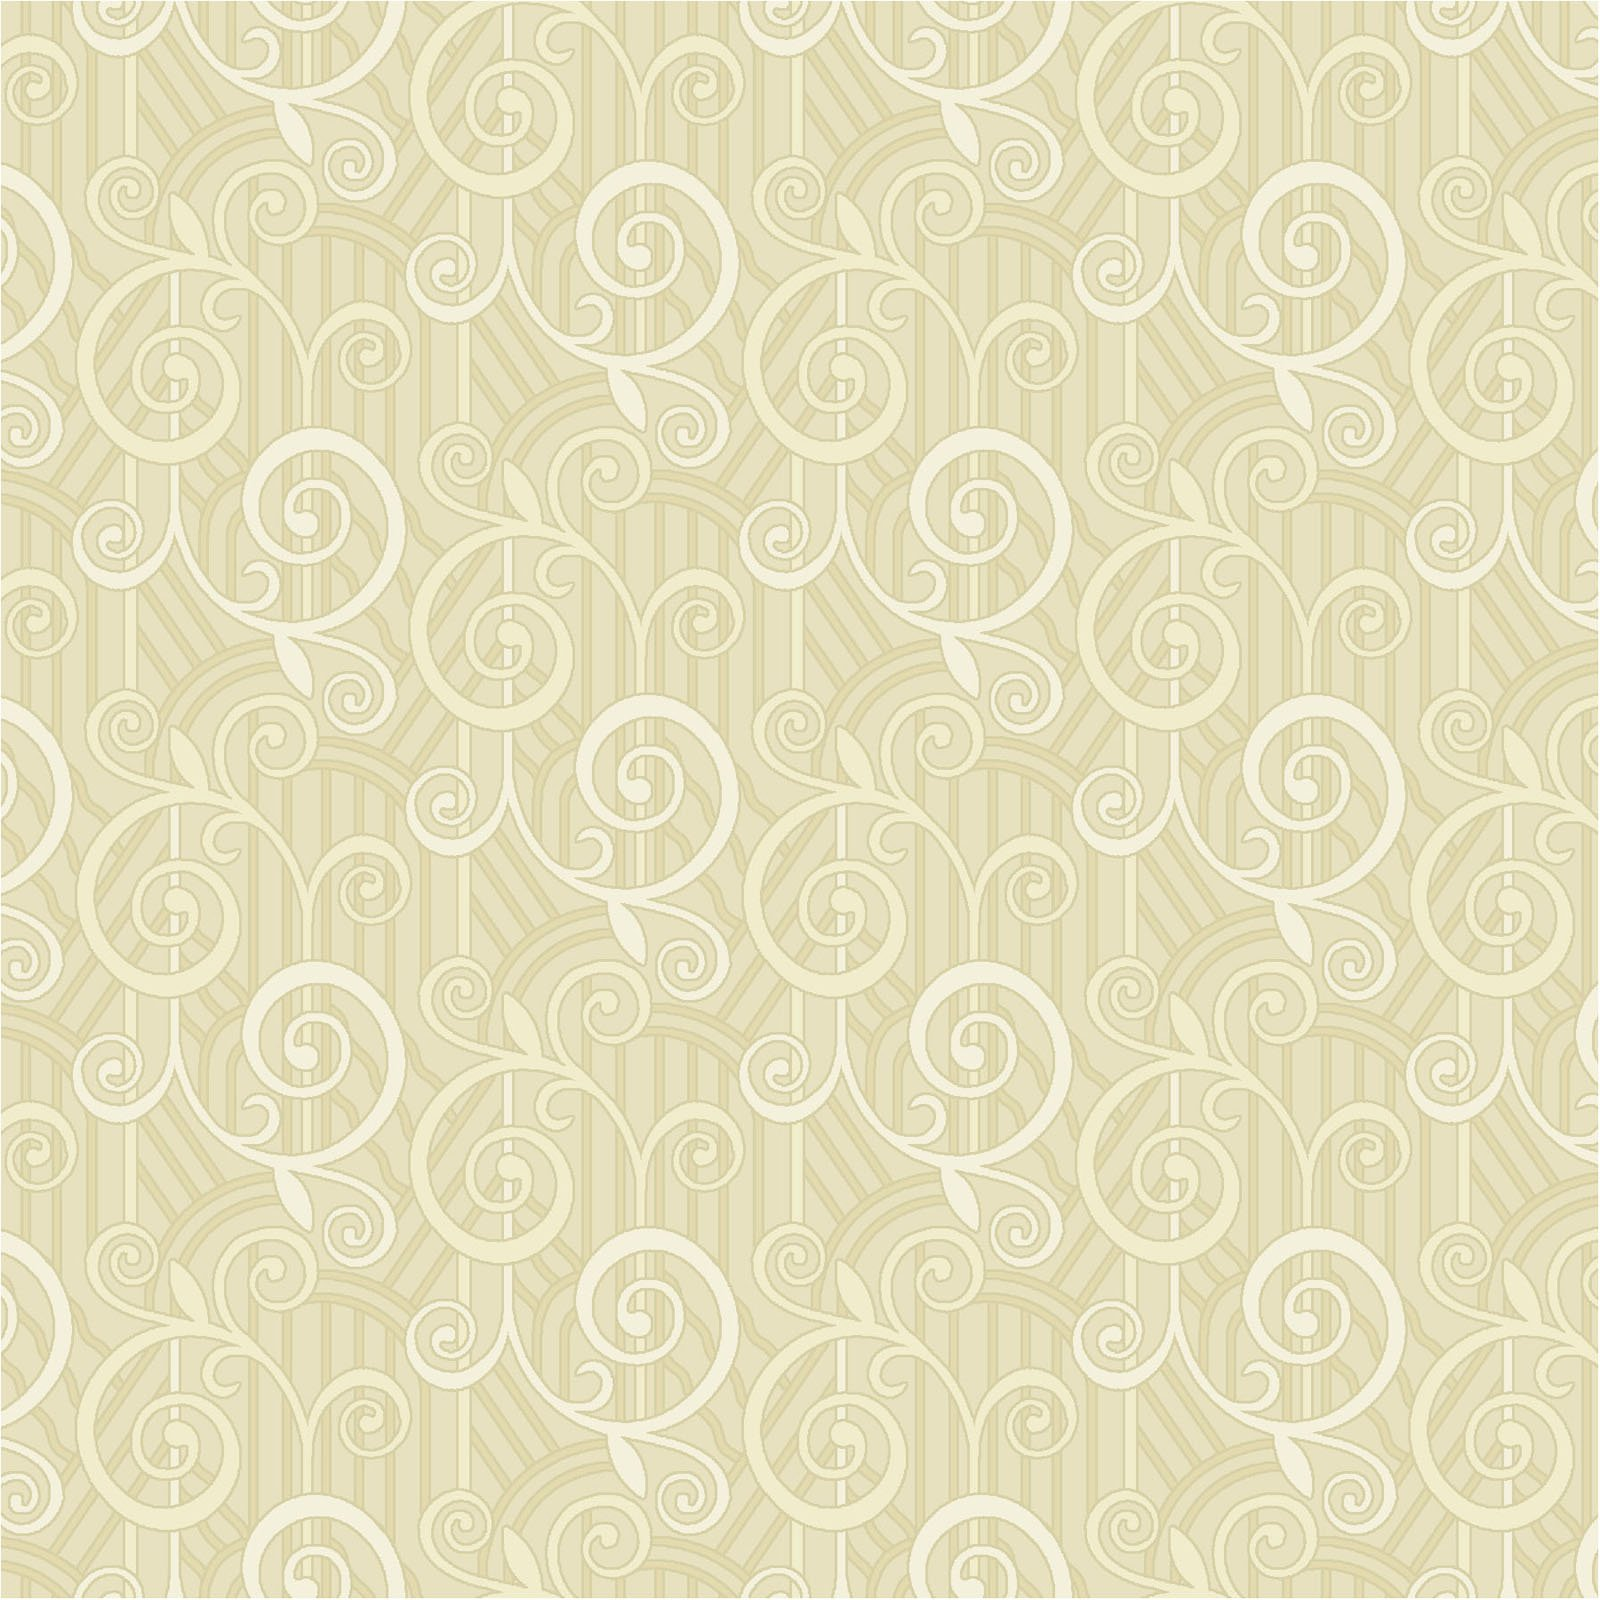 AYAN-4181 NE - AYANA BY P&B BOUTIQUE GEOMETRIC NEUTRAL